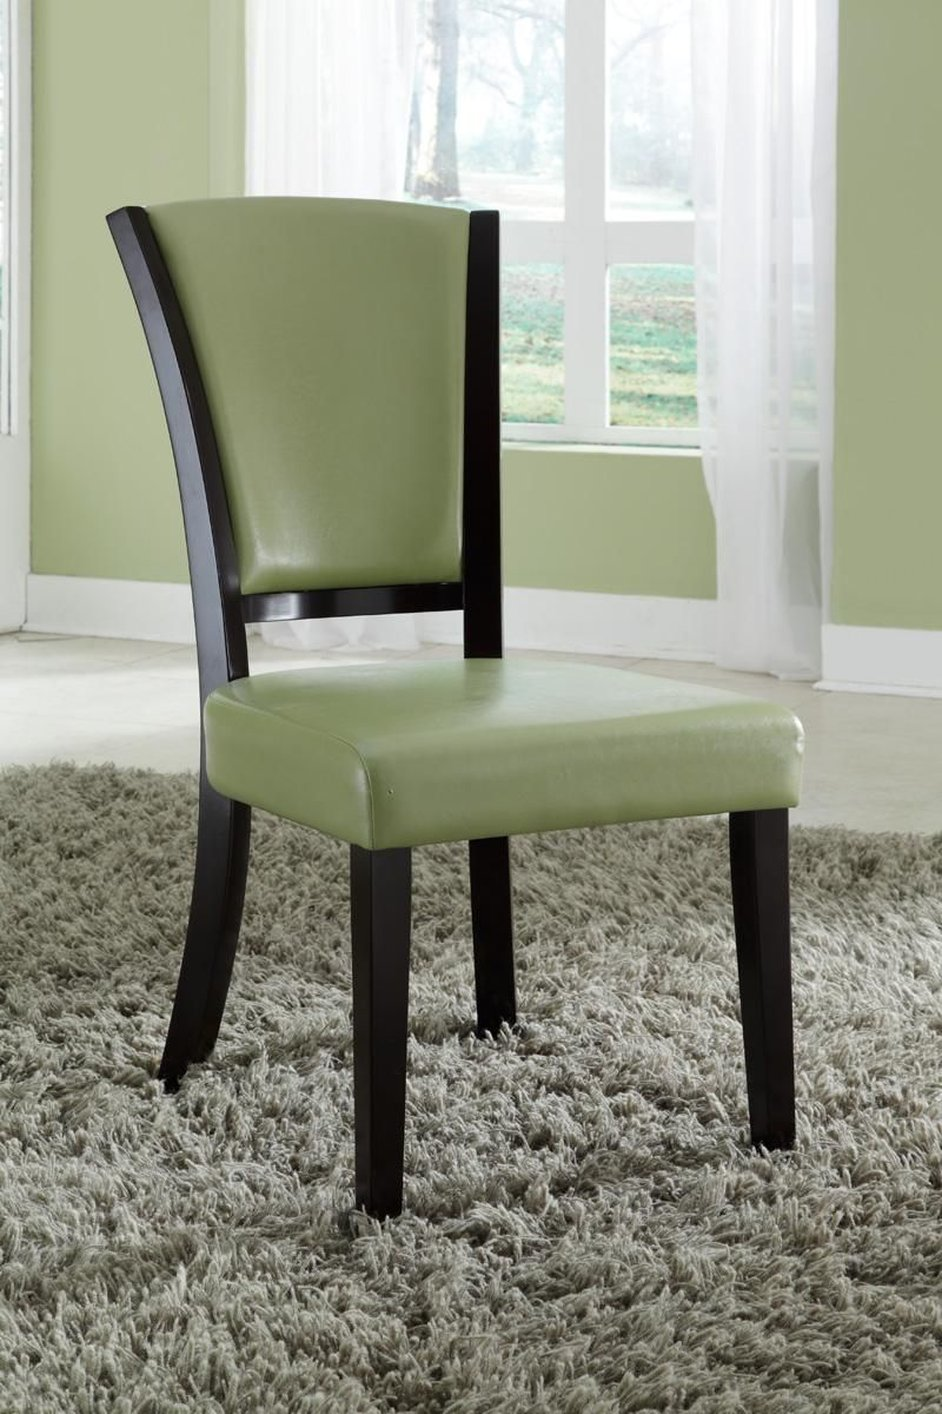 Green Wood Dining Chair Steal A Sofa Furniture Outlet